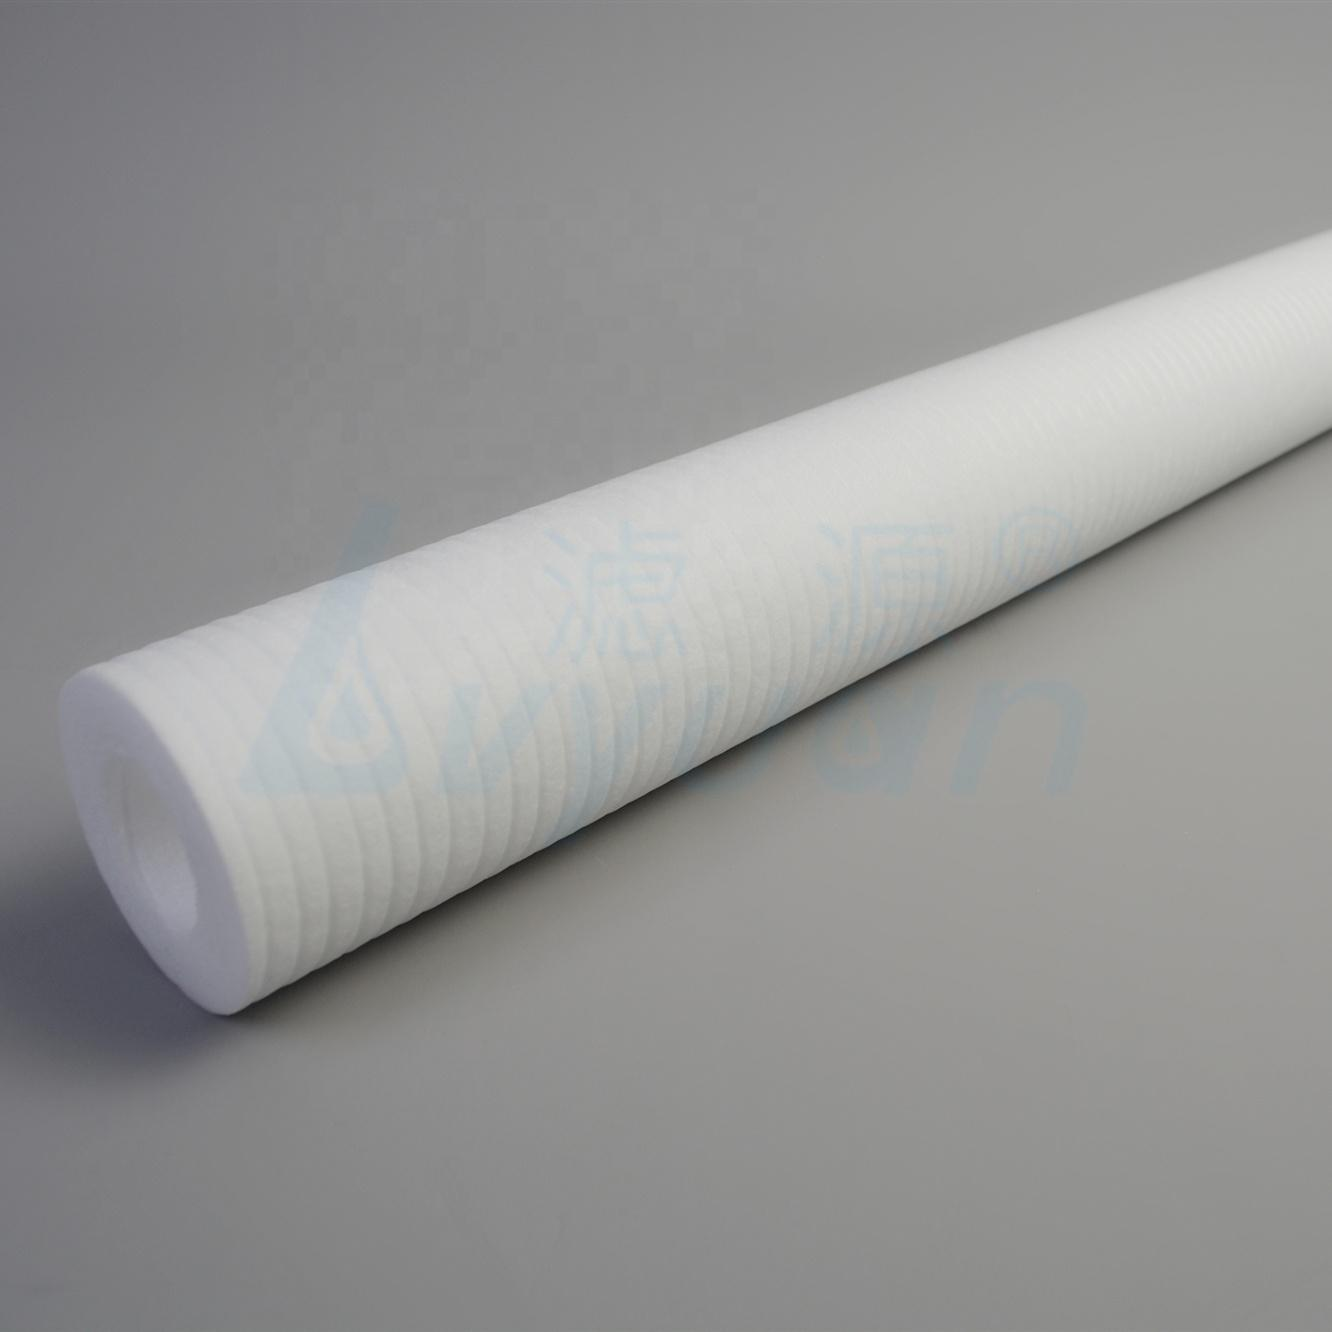 20 Inch Water Filter Cartridge PP Filter for Water Filtration